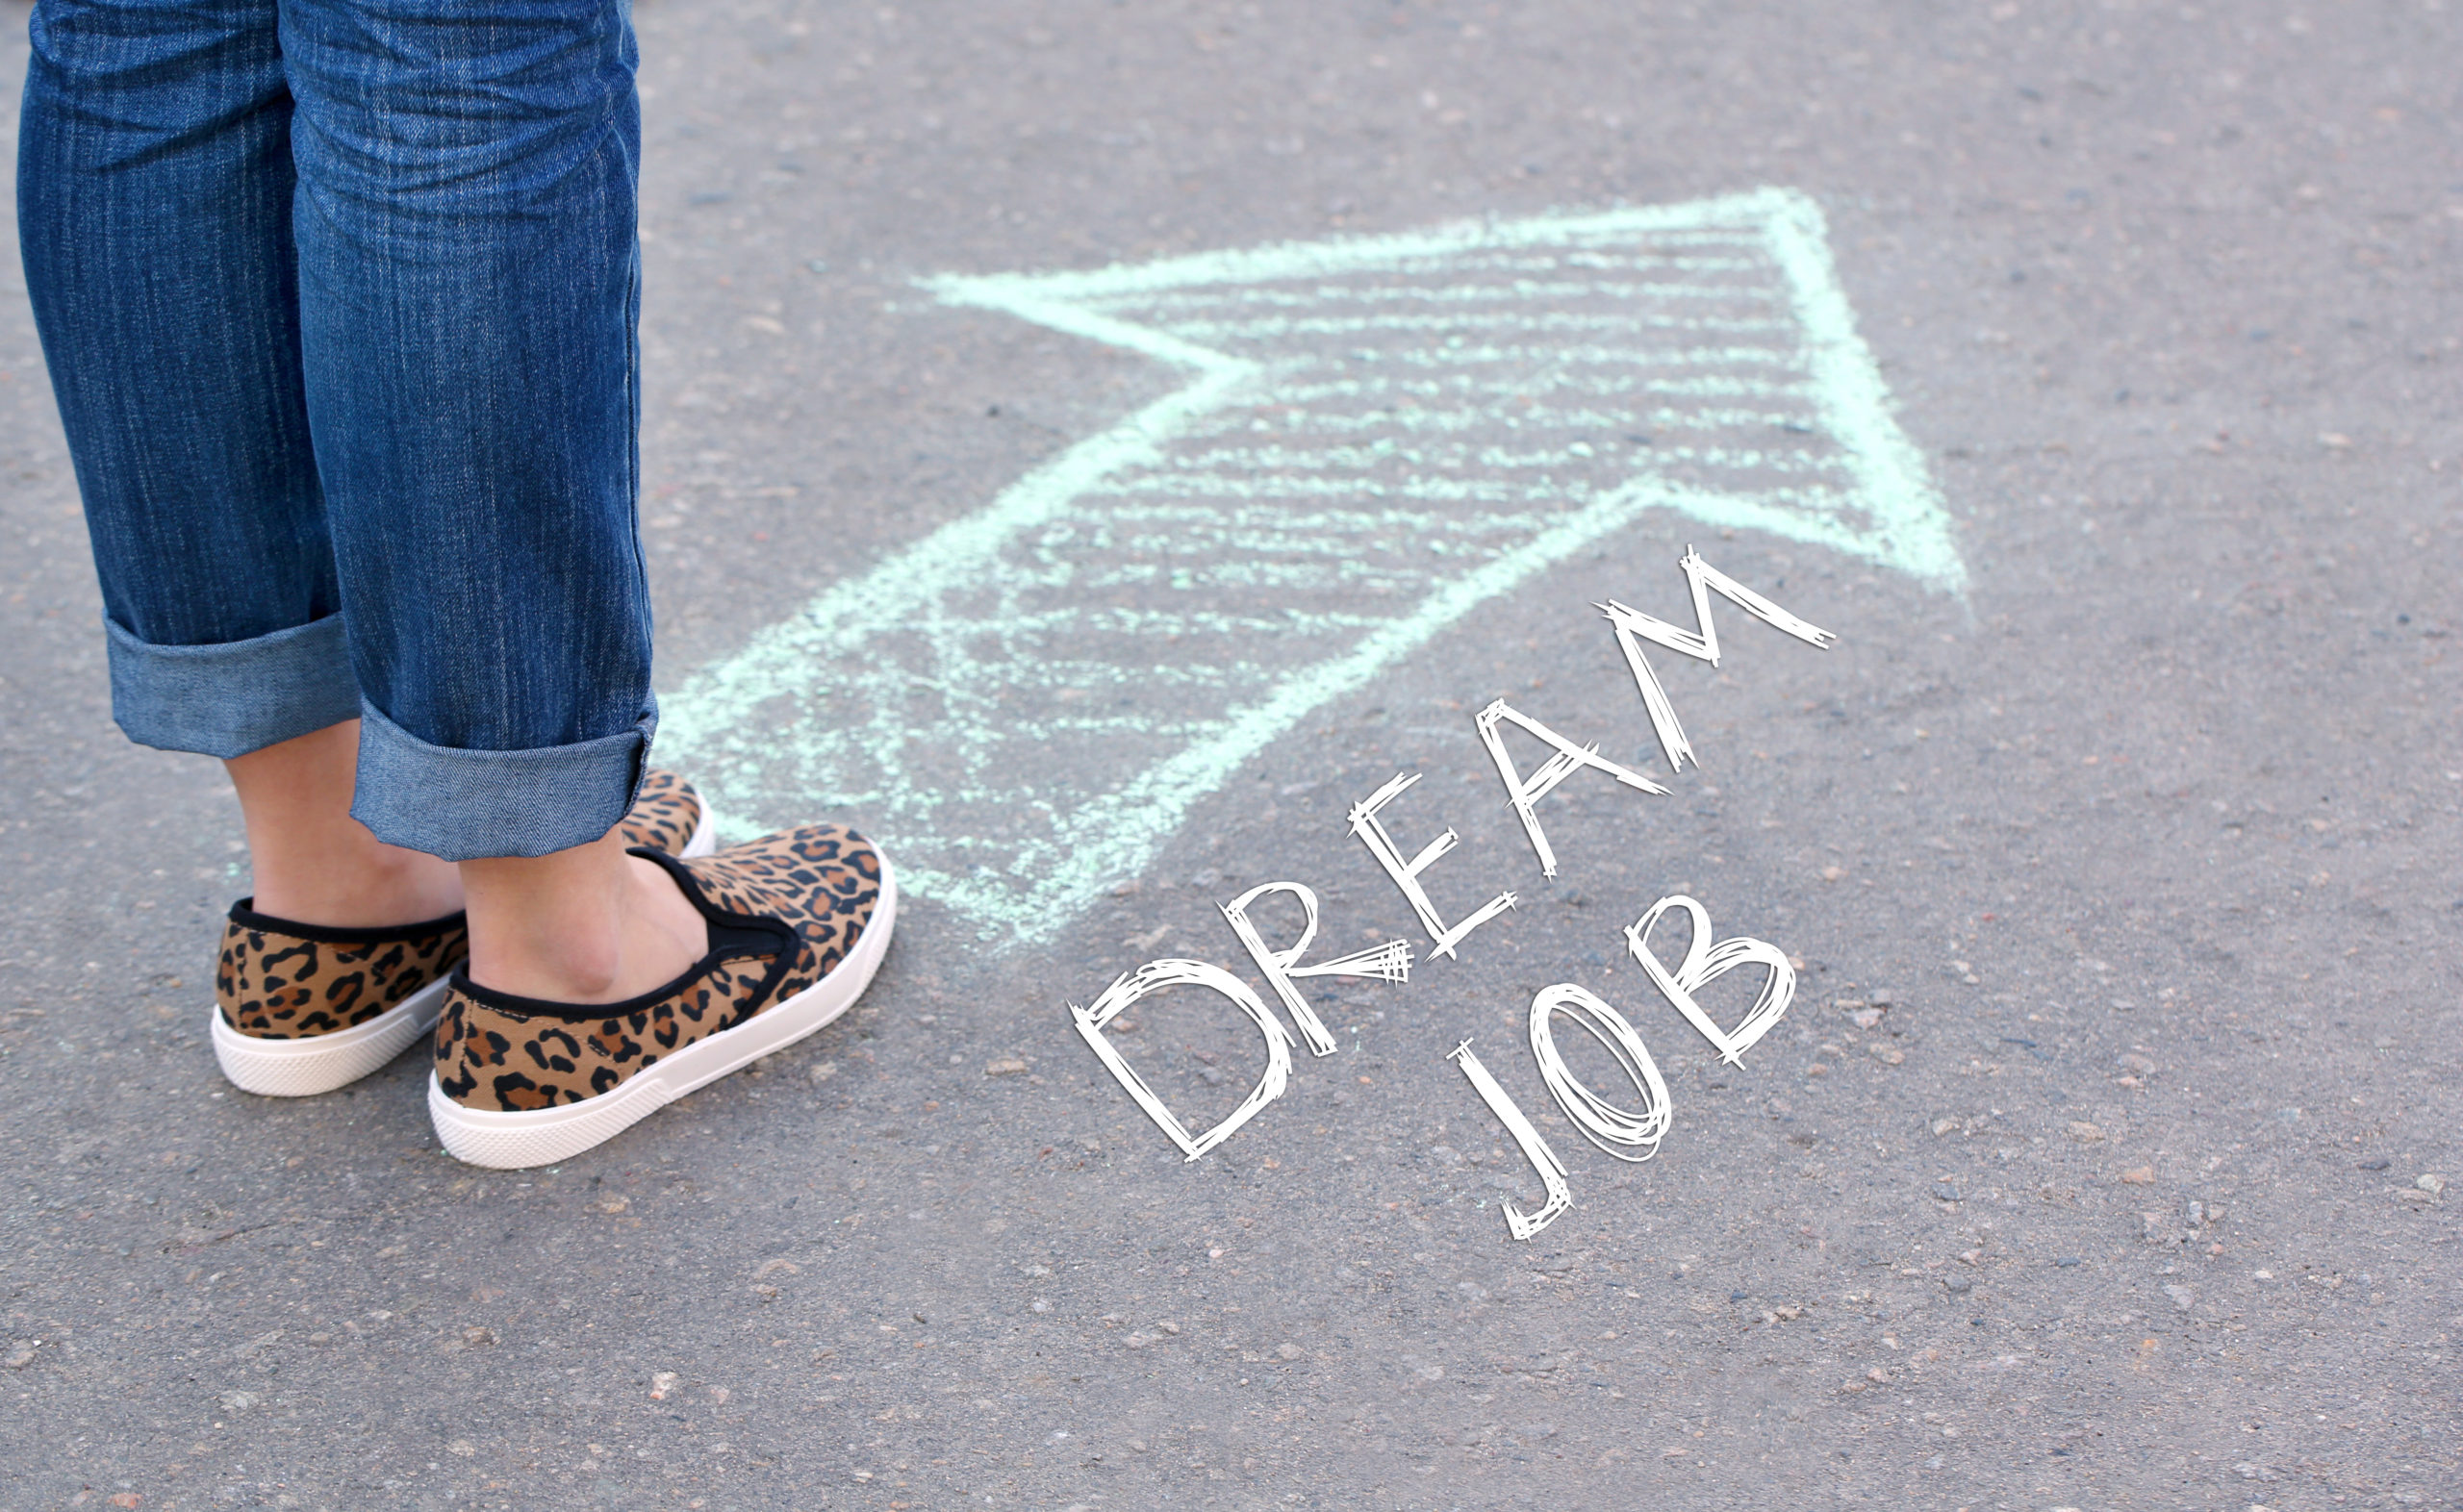 Career Research Guide: How to Find Your Dream Job